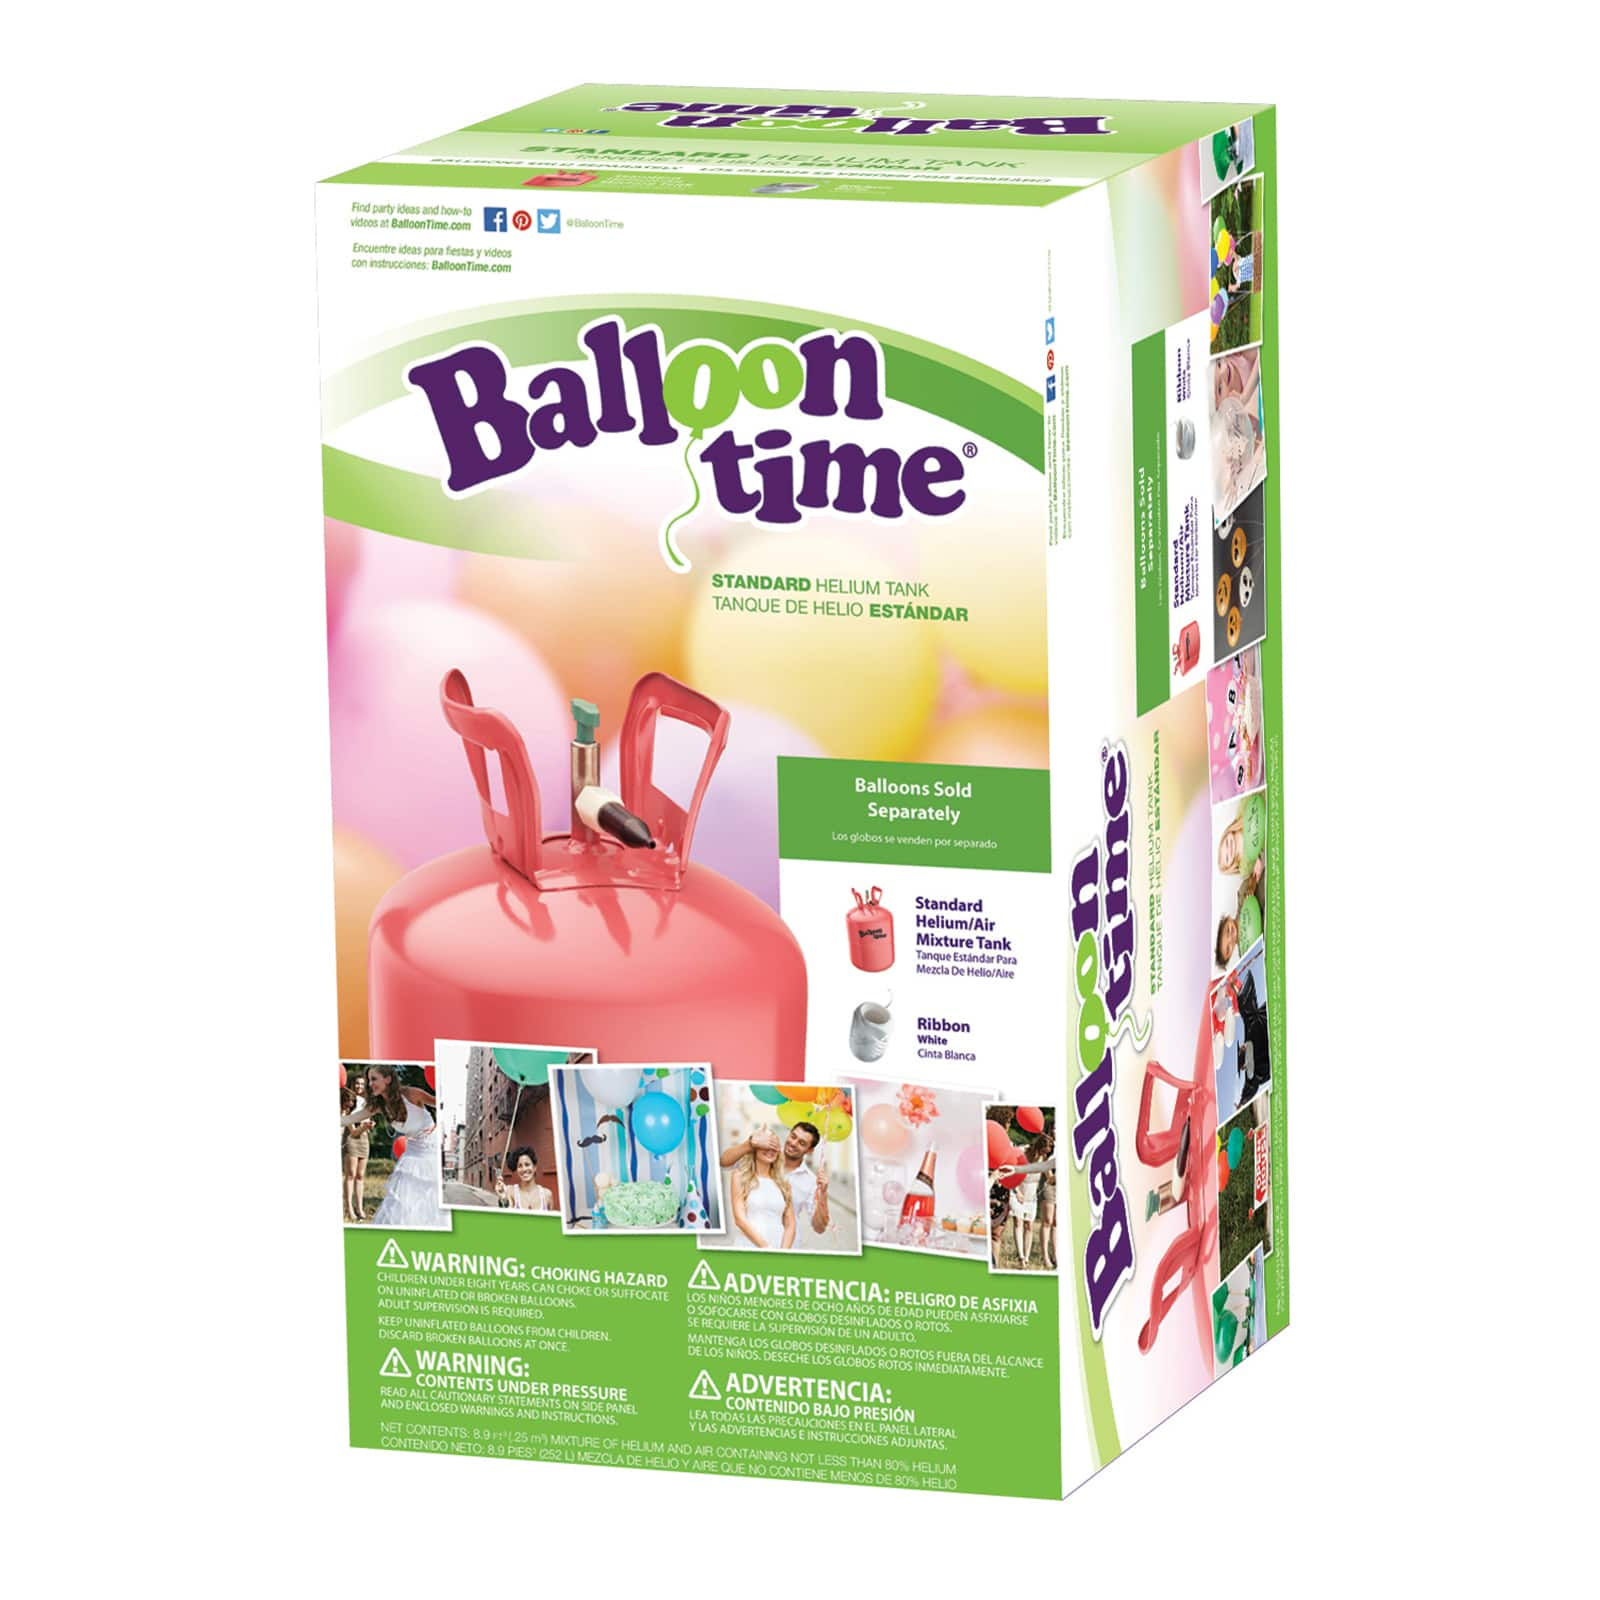 balloon time coupons